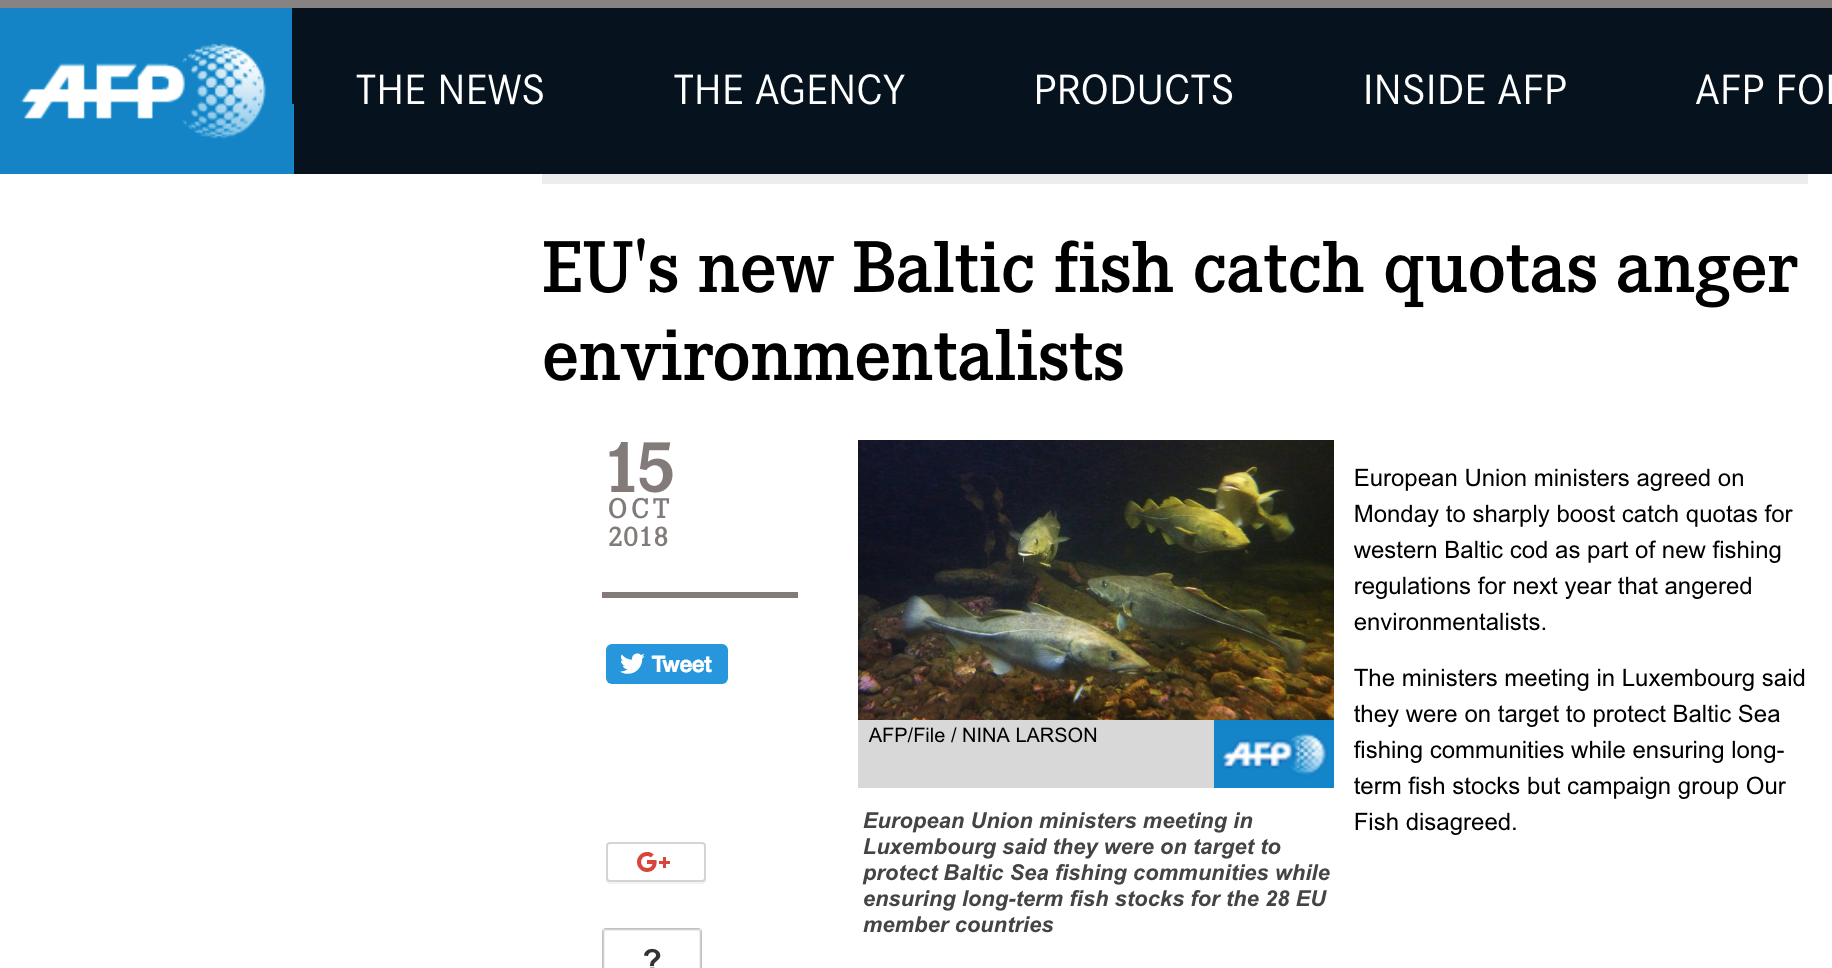 EU's new Baltic fish catch quotas anger environmentalists